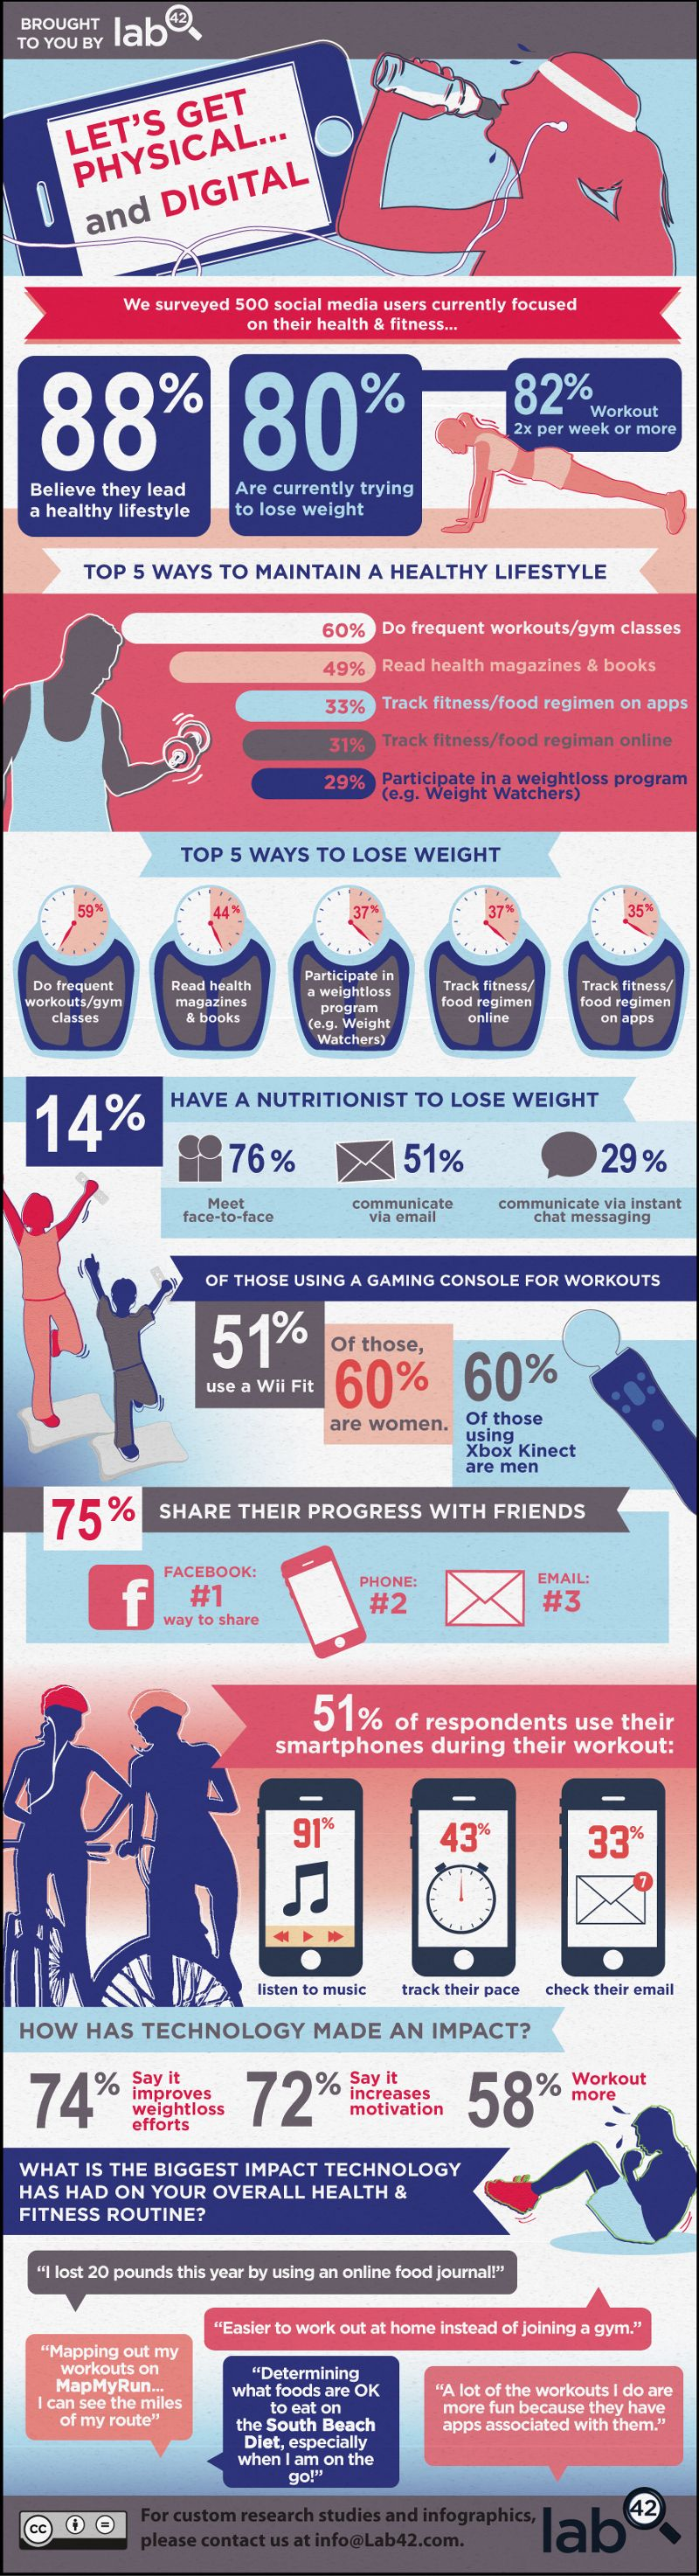 Does working out twice a day make you lose weight faster image 3